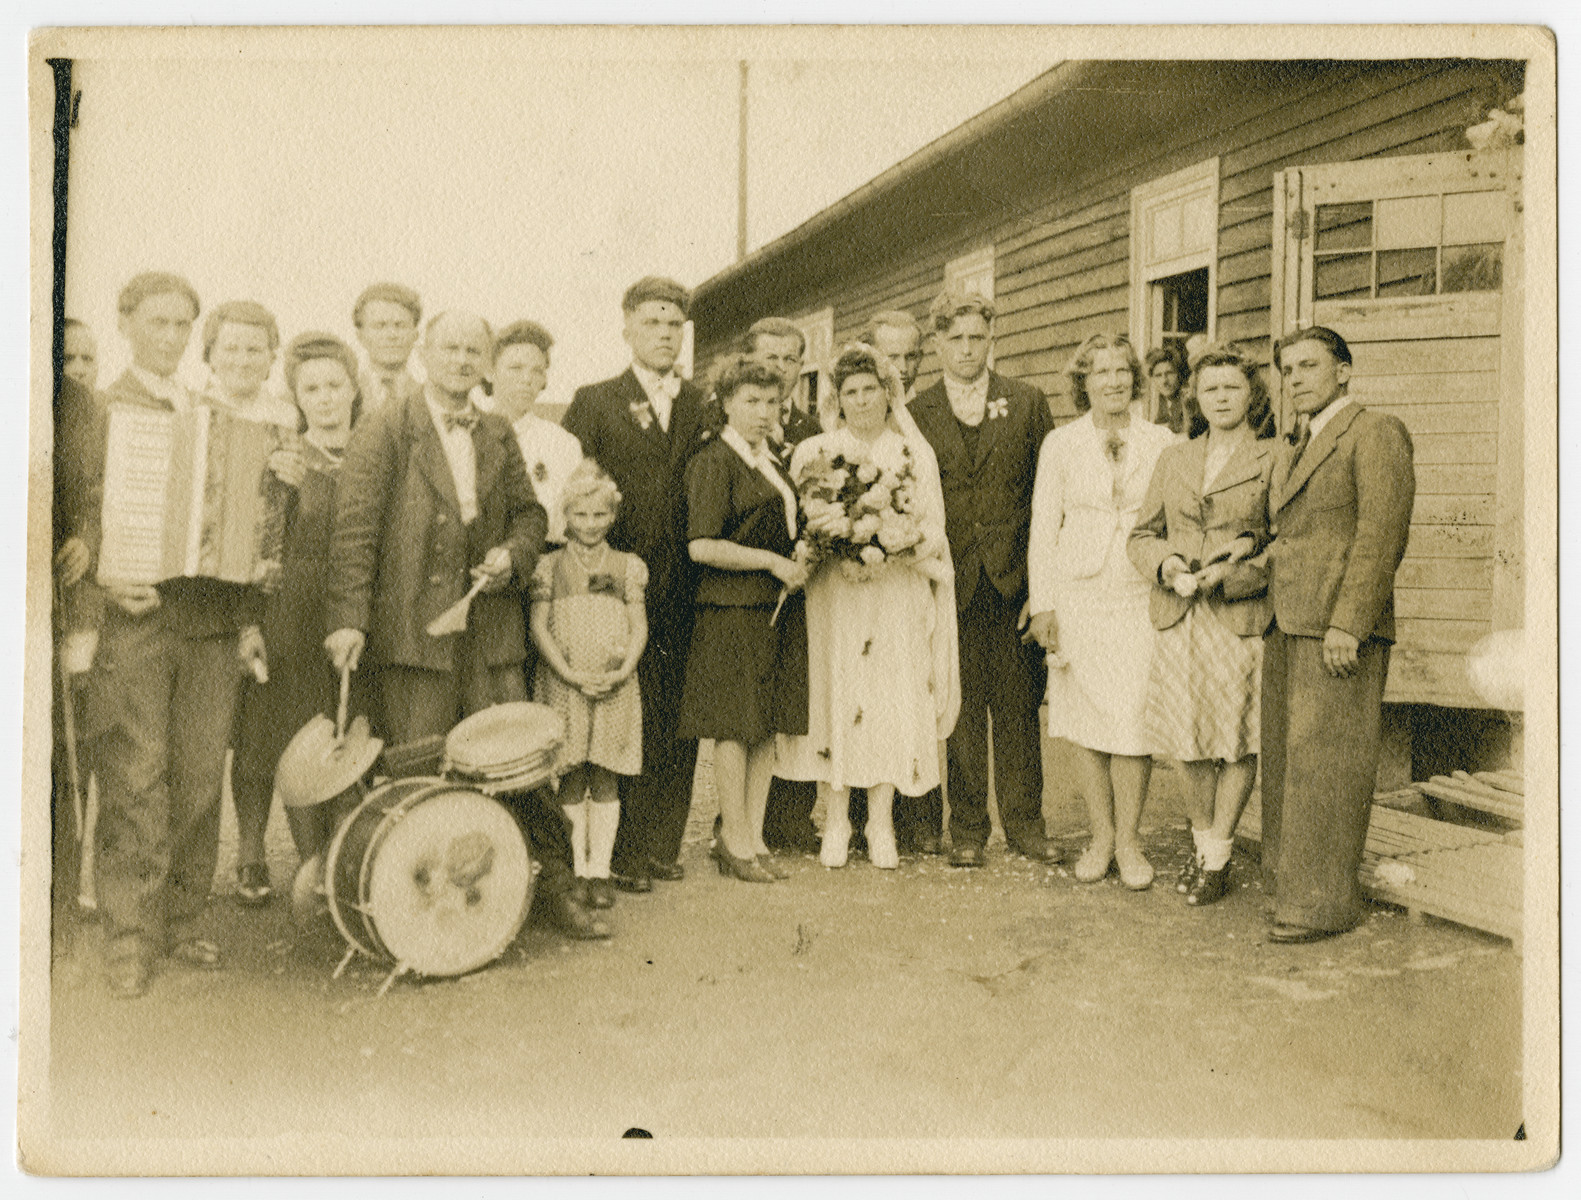 A wedding party in the Schwarzenborn displaced persons camp.  Among those pictured are the bride, Helene Cenkar Bodakowski, and the groom, Jan Bodakowski.